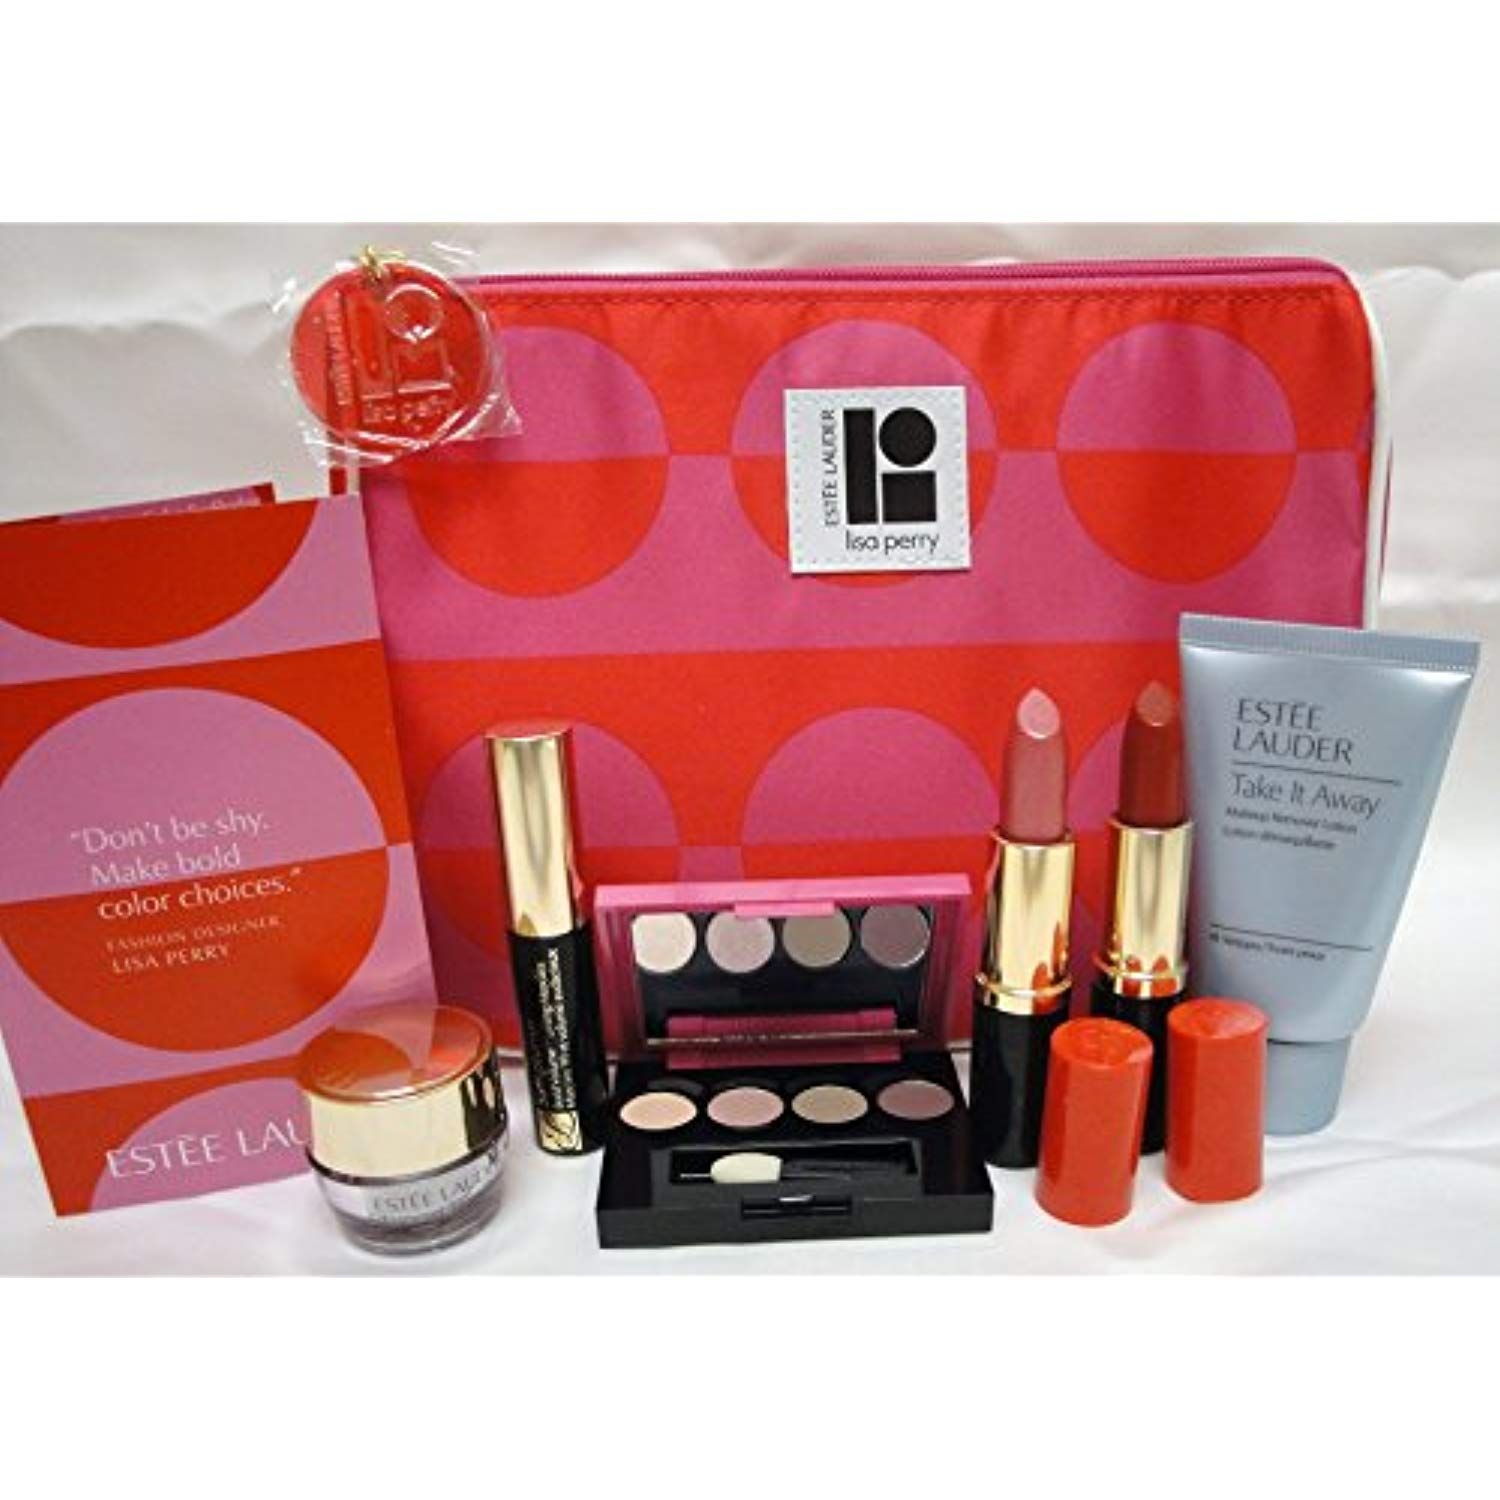 Estee Lauder 2015 Spring Cosmetic Gift Set Advanced Time